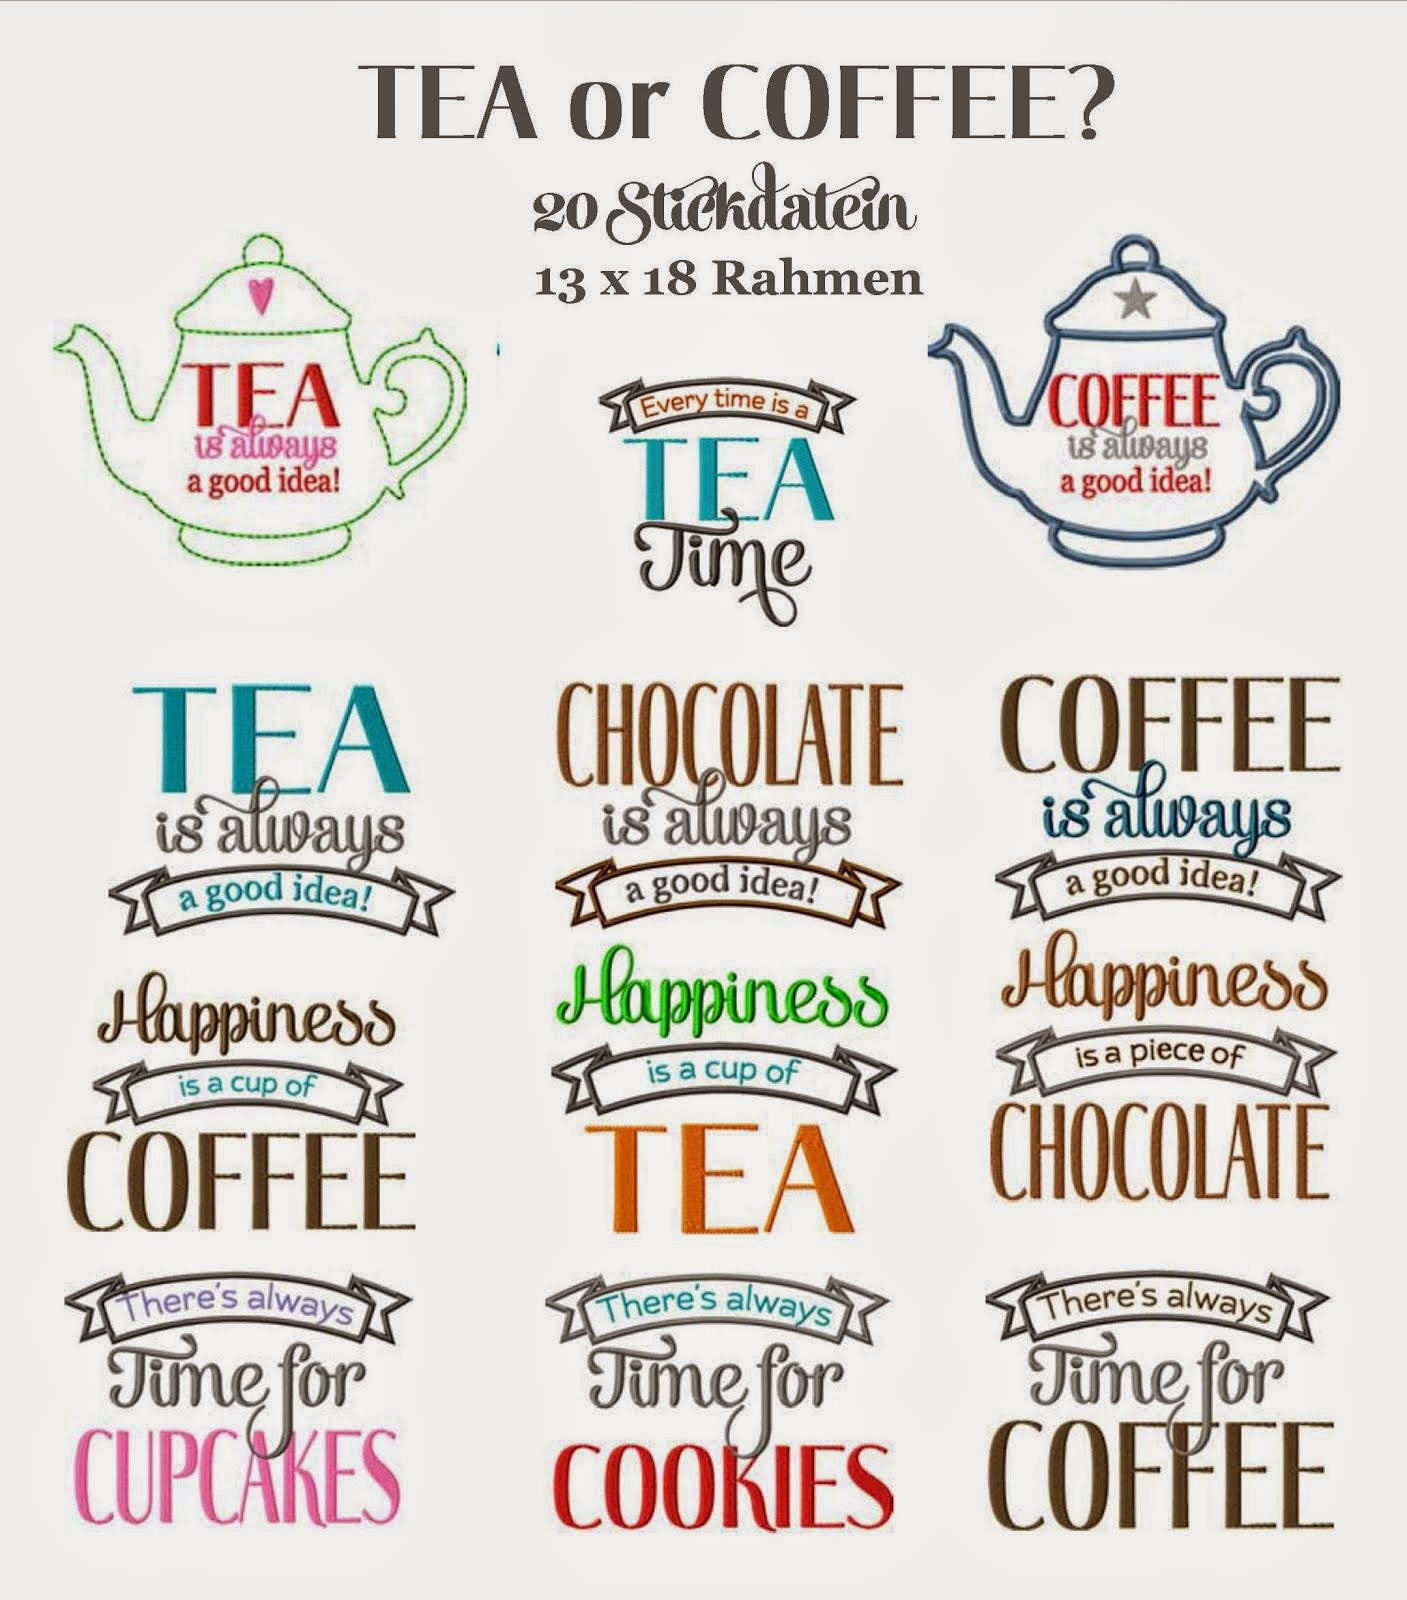 TEA or COFFEE